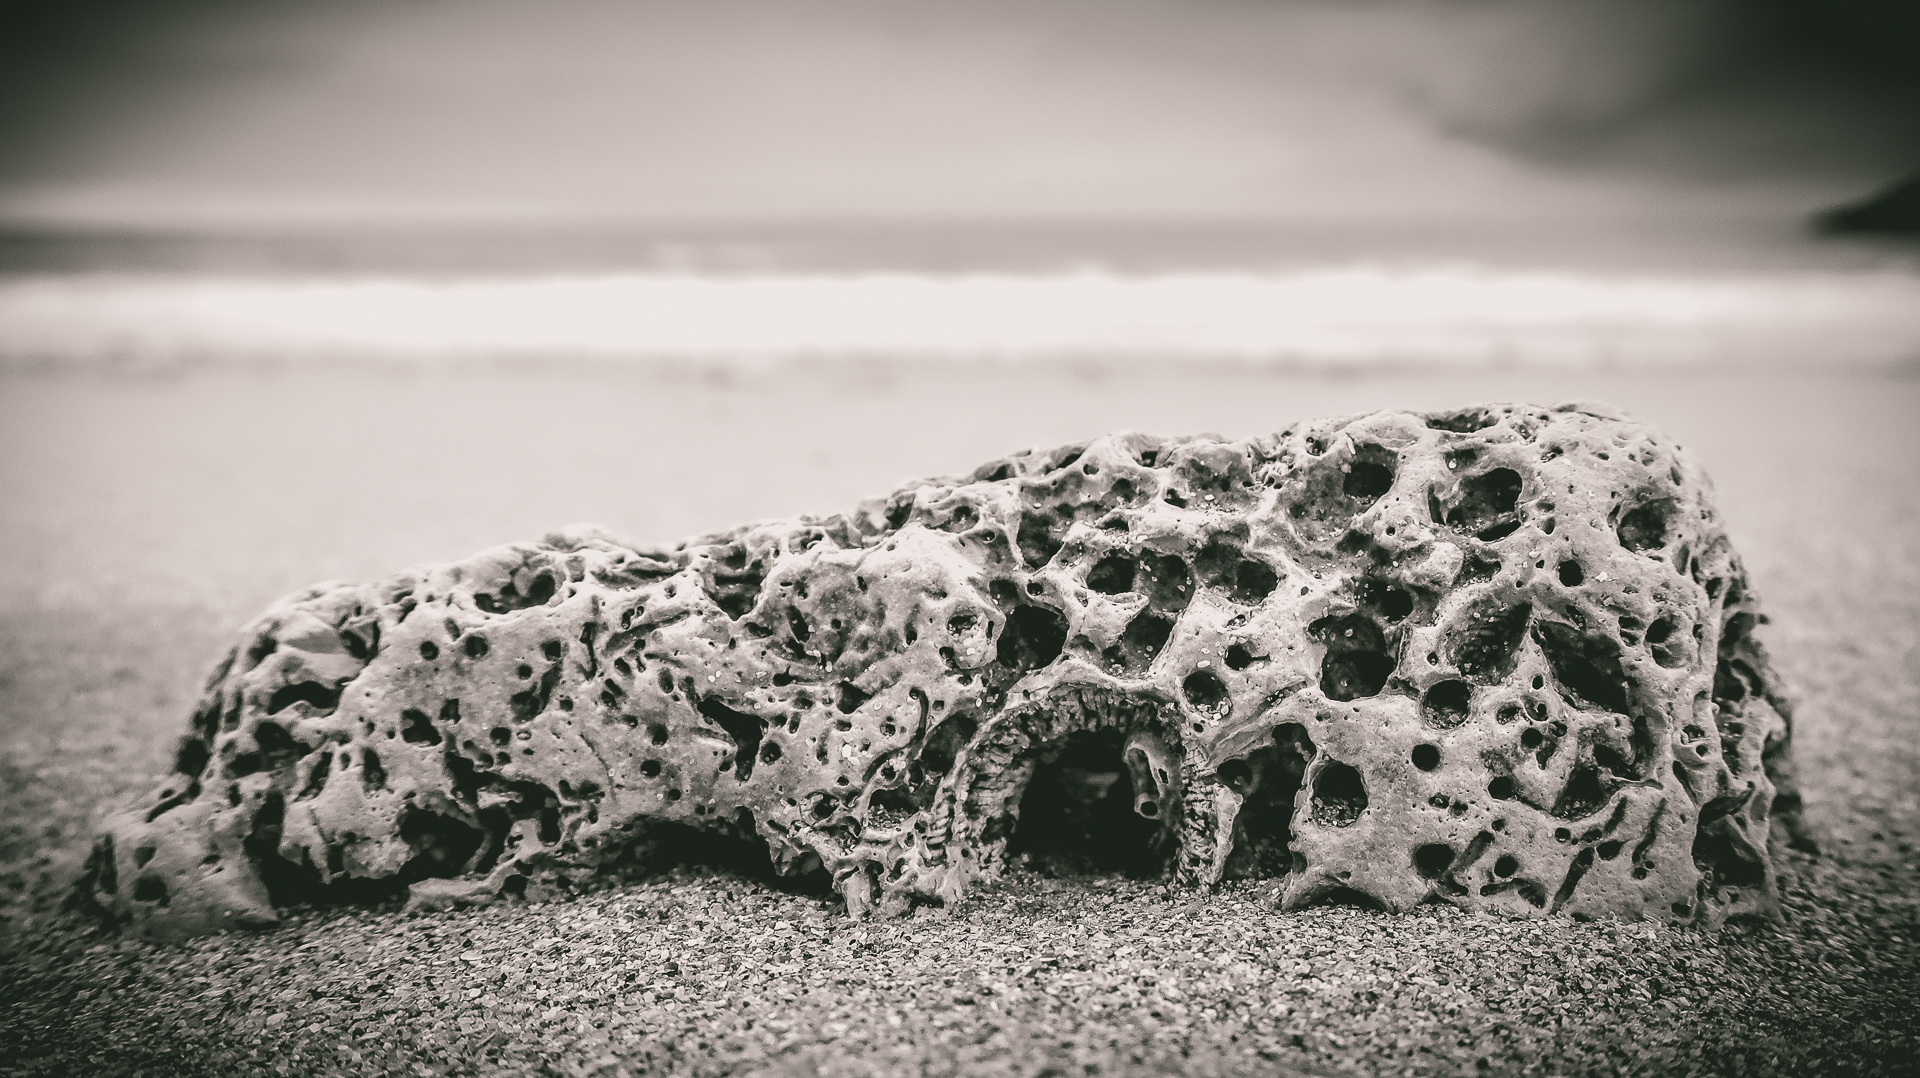 A very shallow depth of field close up black & white view of a long horizontal stone, similar to a pumice stone on a sandy beach. The light coloured stone is pitted with random holes of various diameters all over its surface.